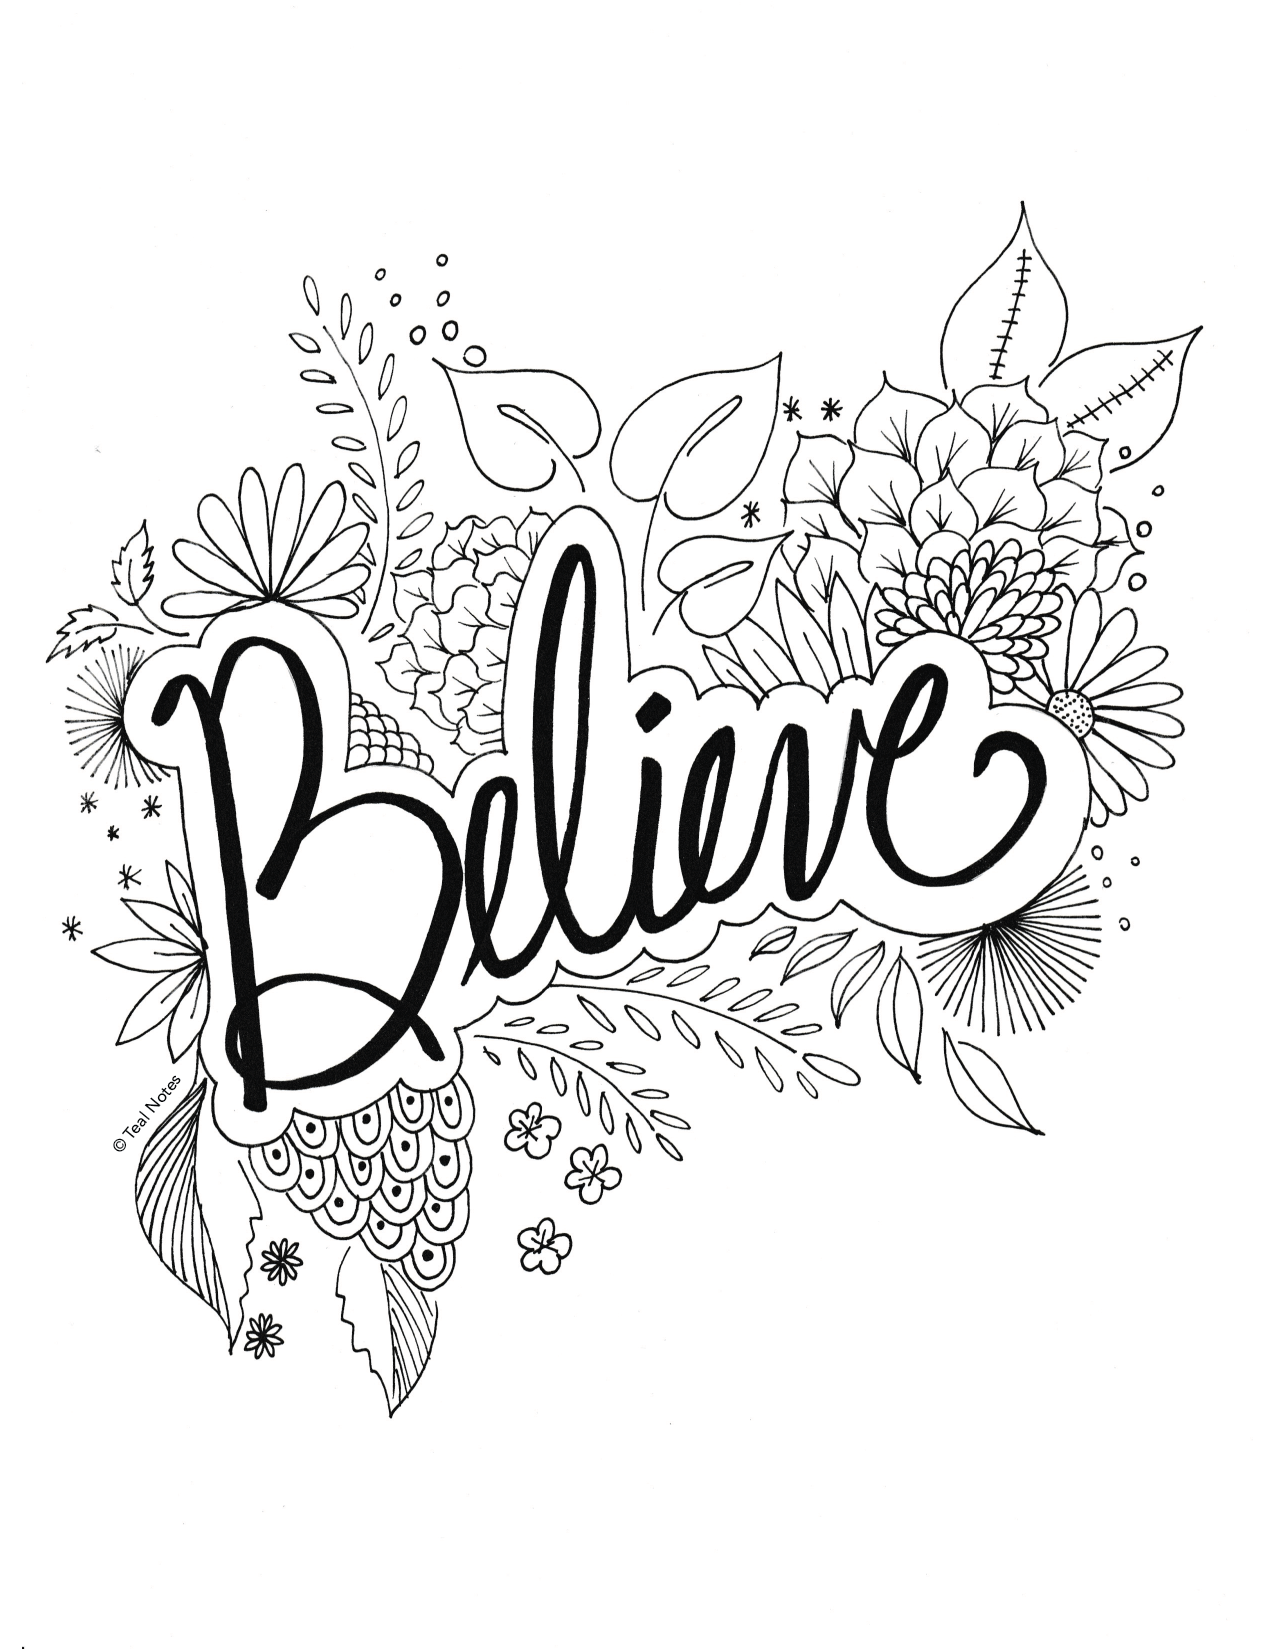 5 Quote Coloring Pages You Can Print And Color On Your Free Time Quote Coloring Pages Free Coloring Pages Love Coloring Pages